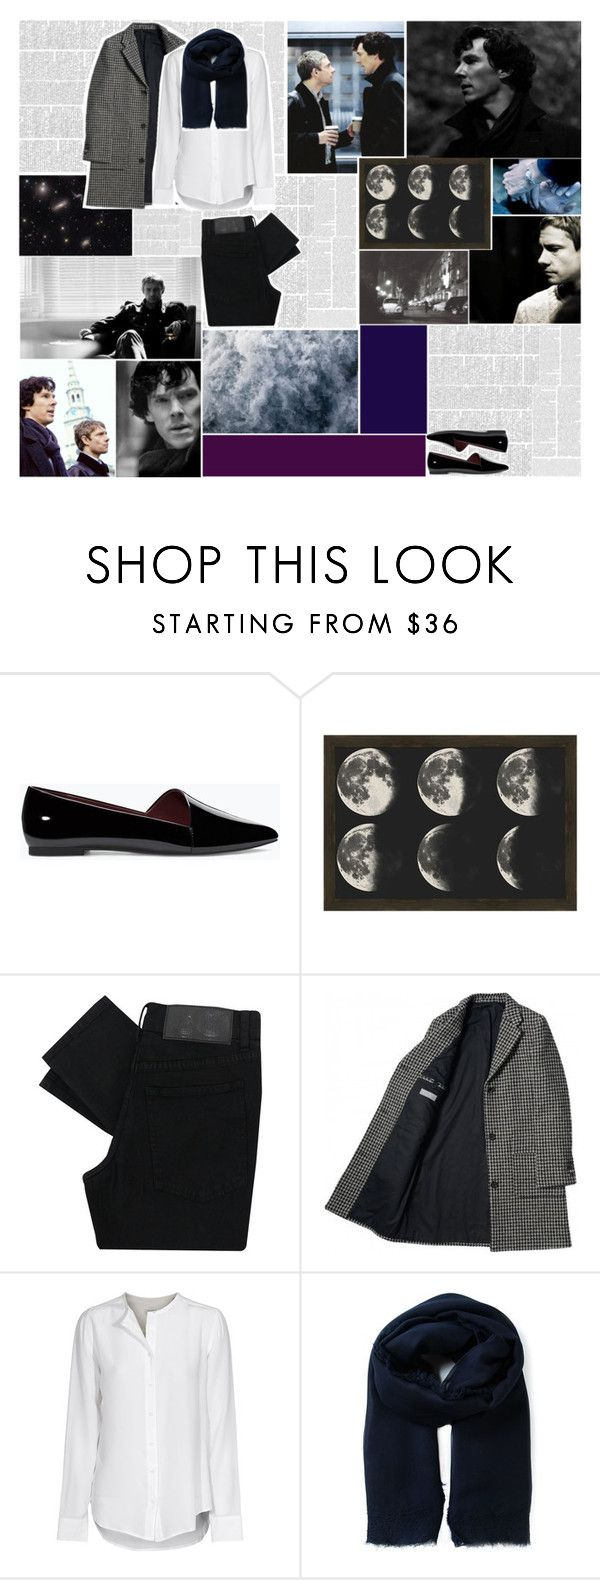 """""""Battle of the Ships Round 2    March 8th"""" by green-jello ❤ liked on Polyvore featuring Zara, PTM Images, Cheap Monday, Equipment and Faliero Sarti"""